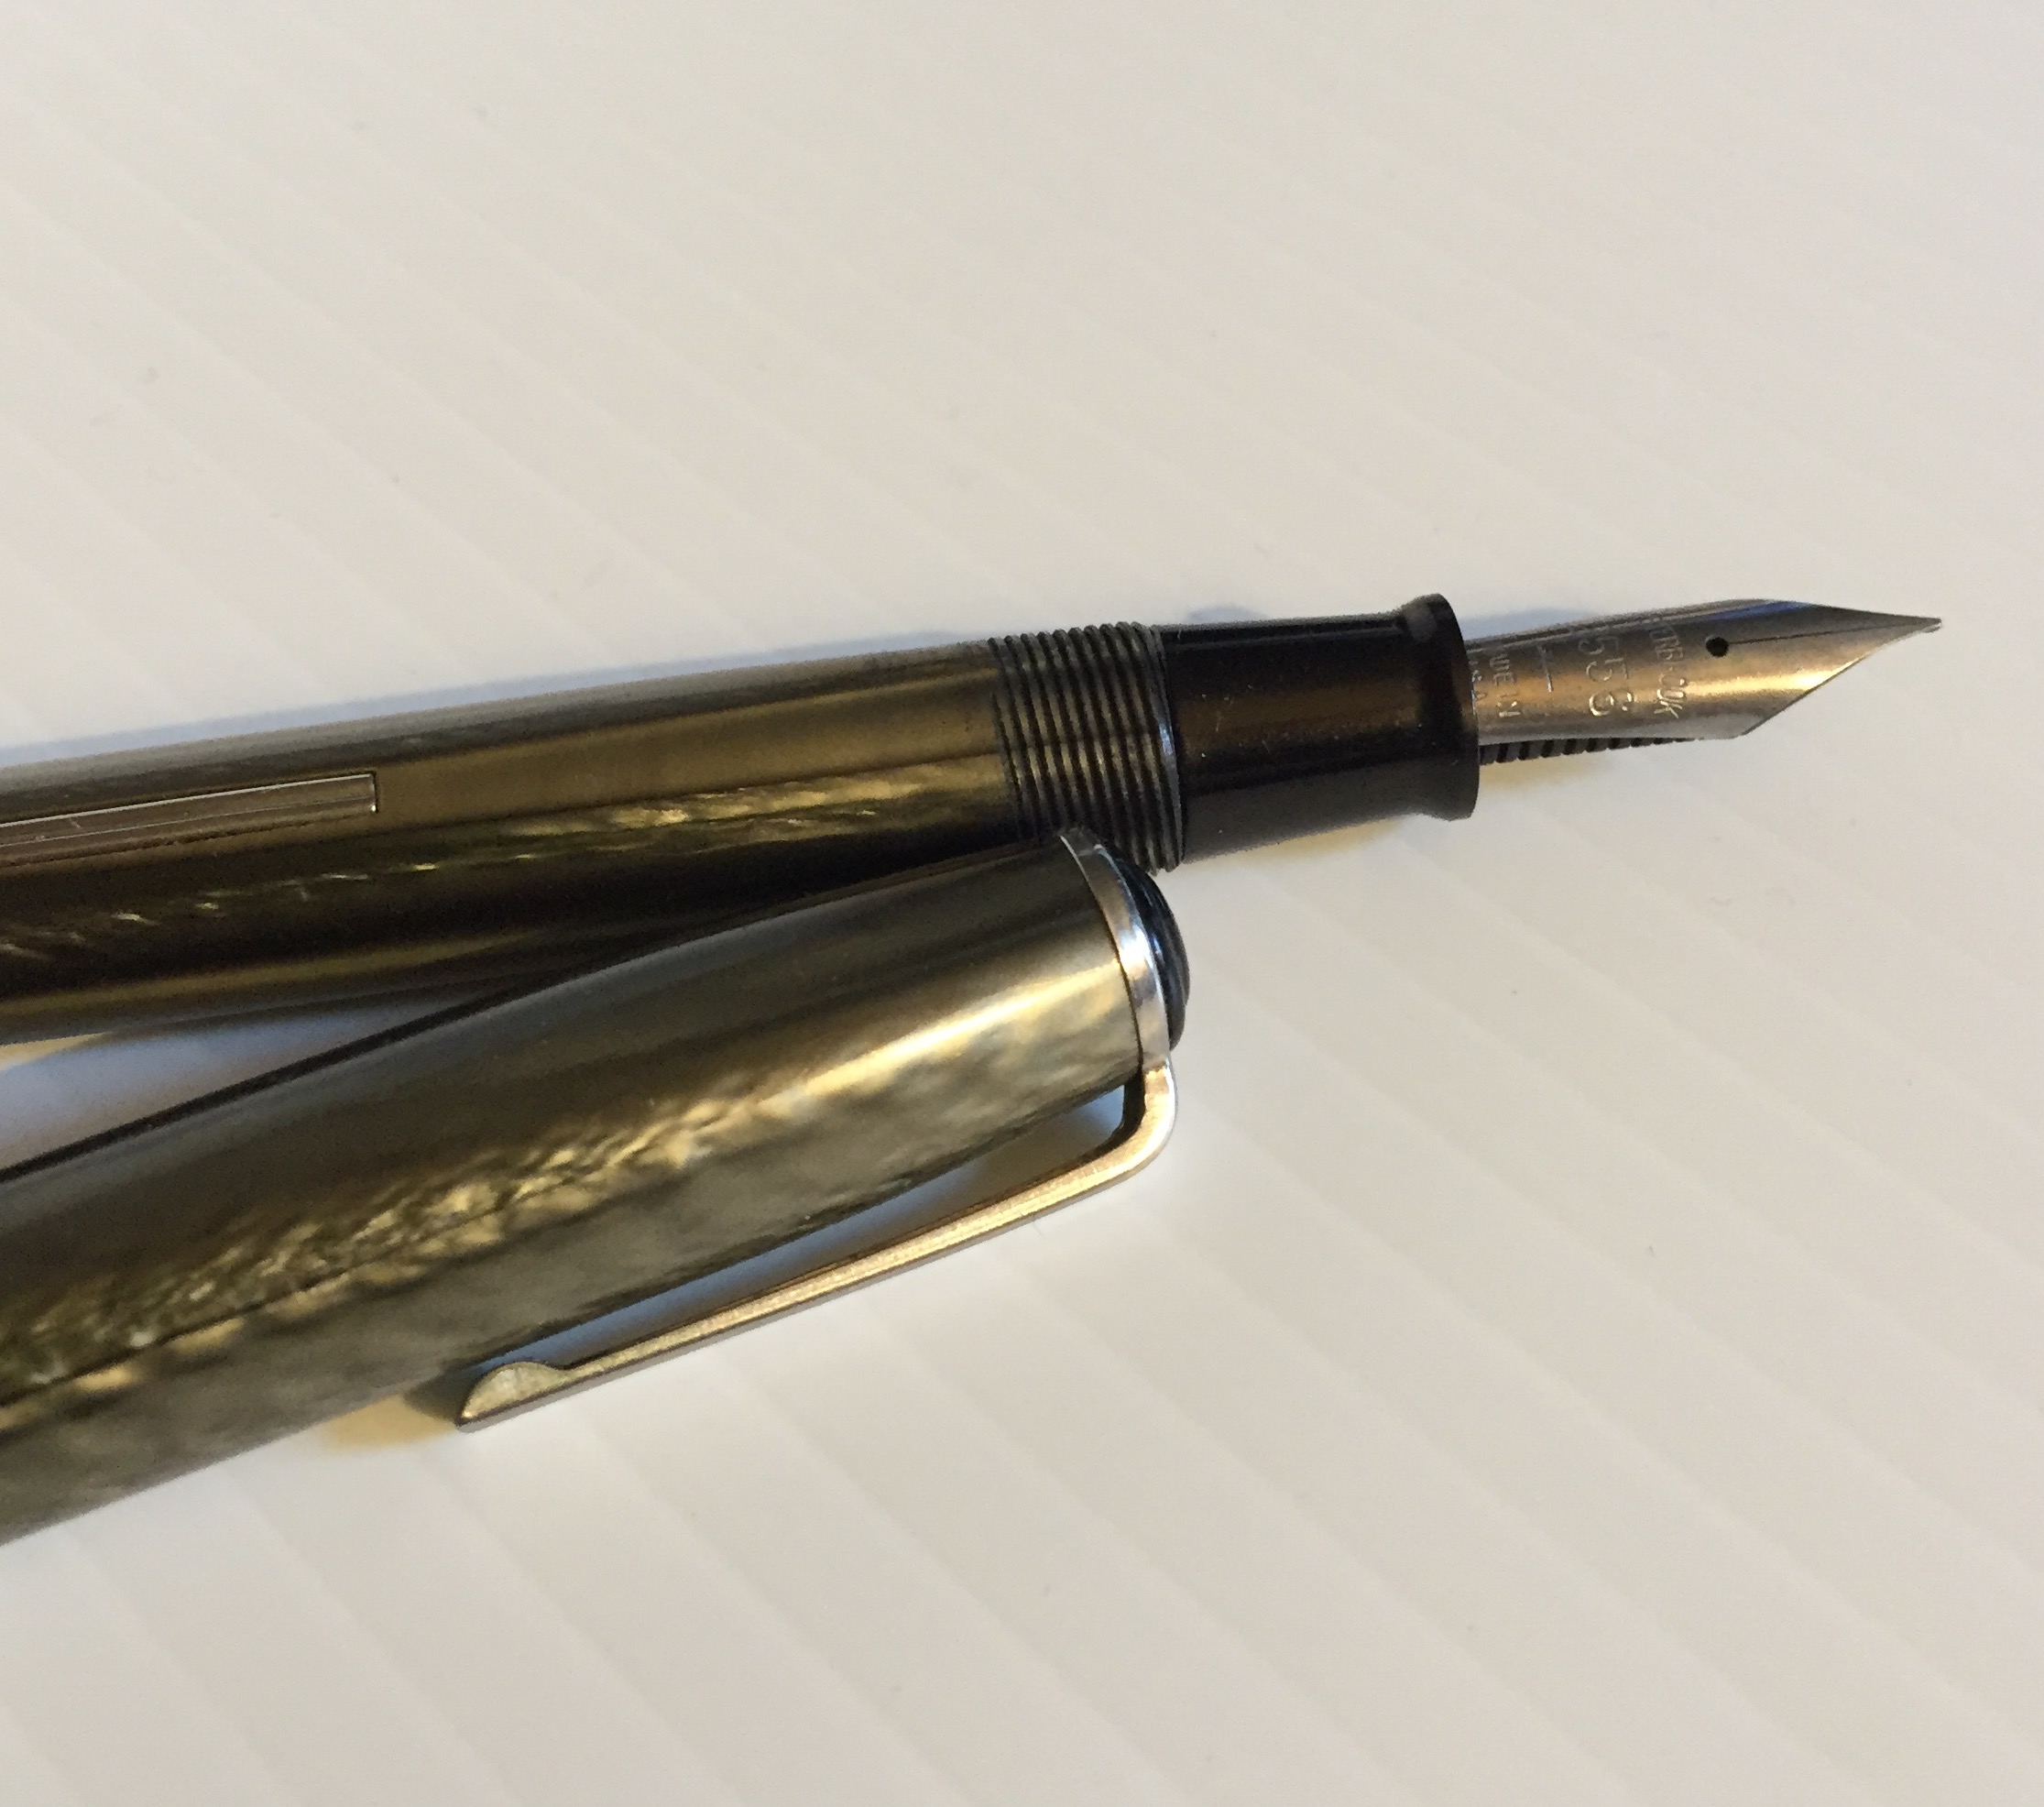 Esterbrook J Fountain Pen showing nib